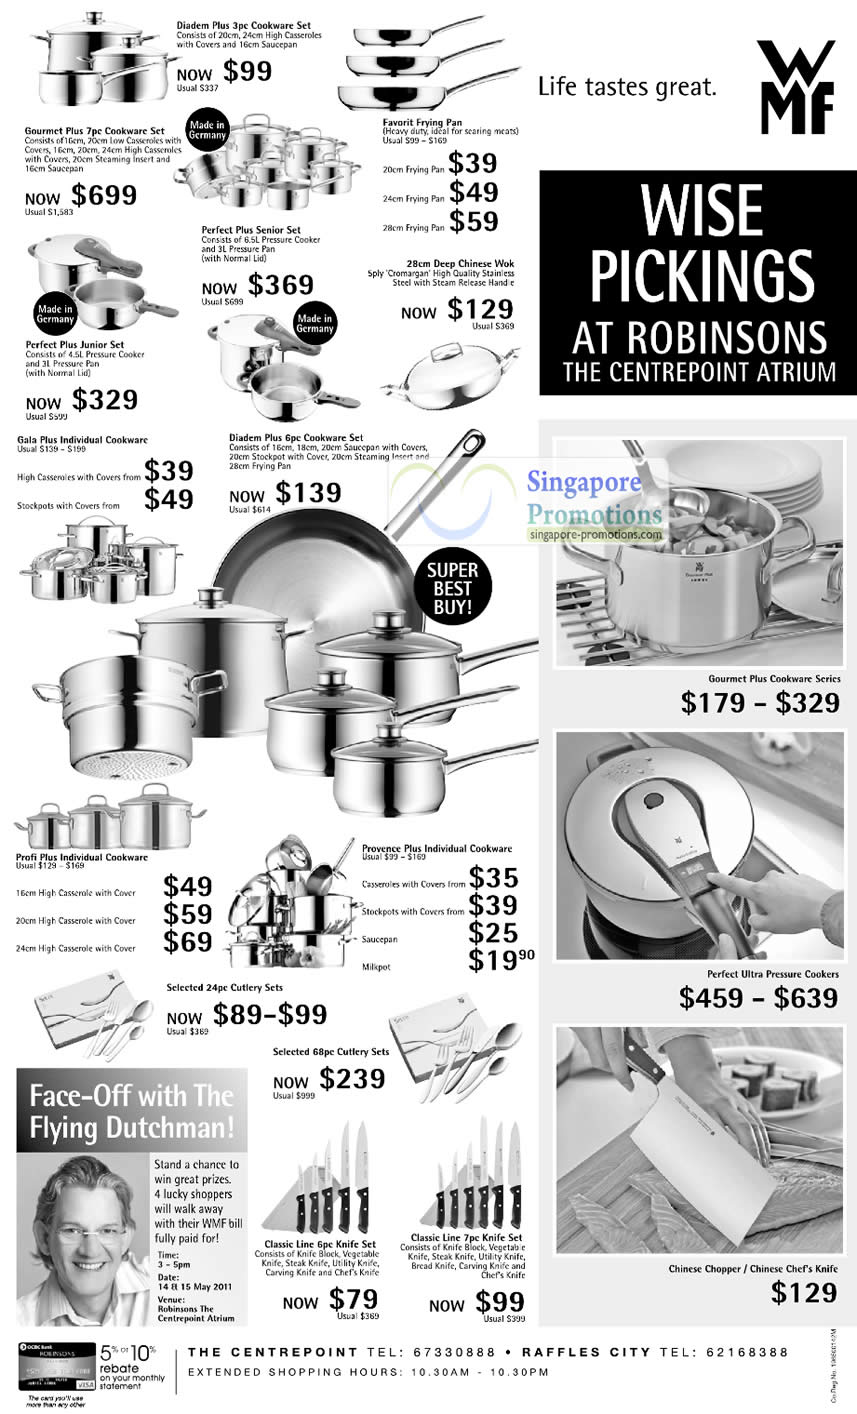 13 Apr WMF Diadem Cookware, Kitchenware, Favorit, Perfect Plus, Gala Plus, Cutlery Sets, Knife Sets, Pressure Cookers